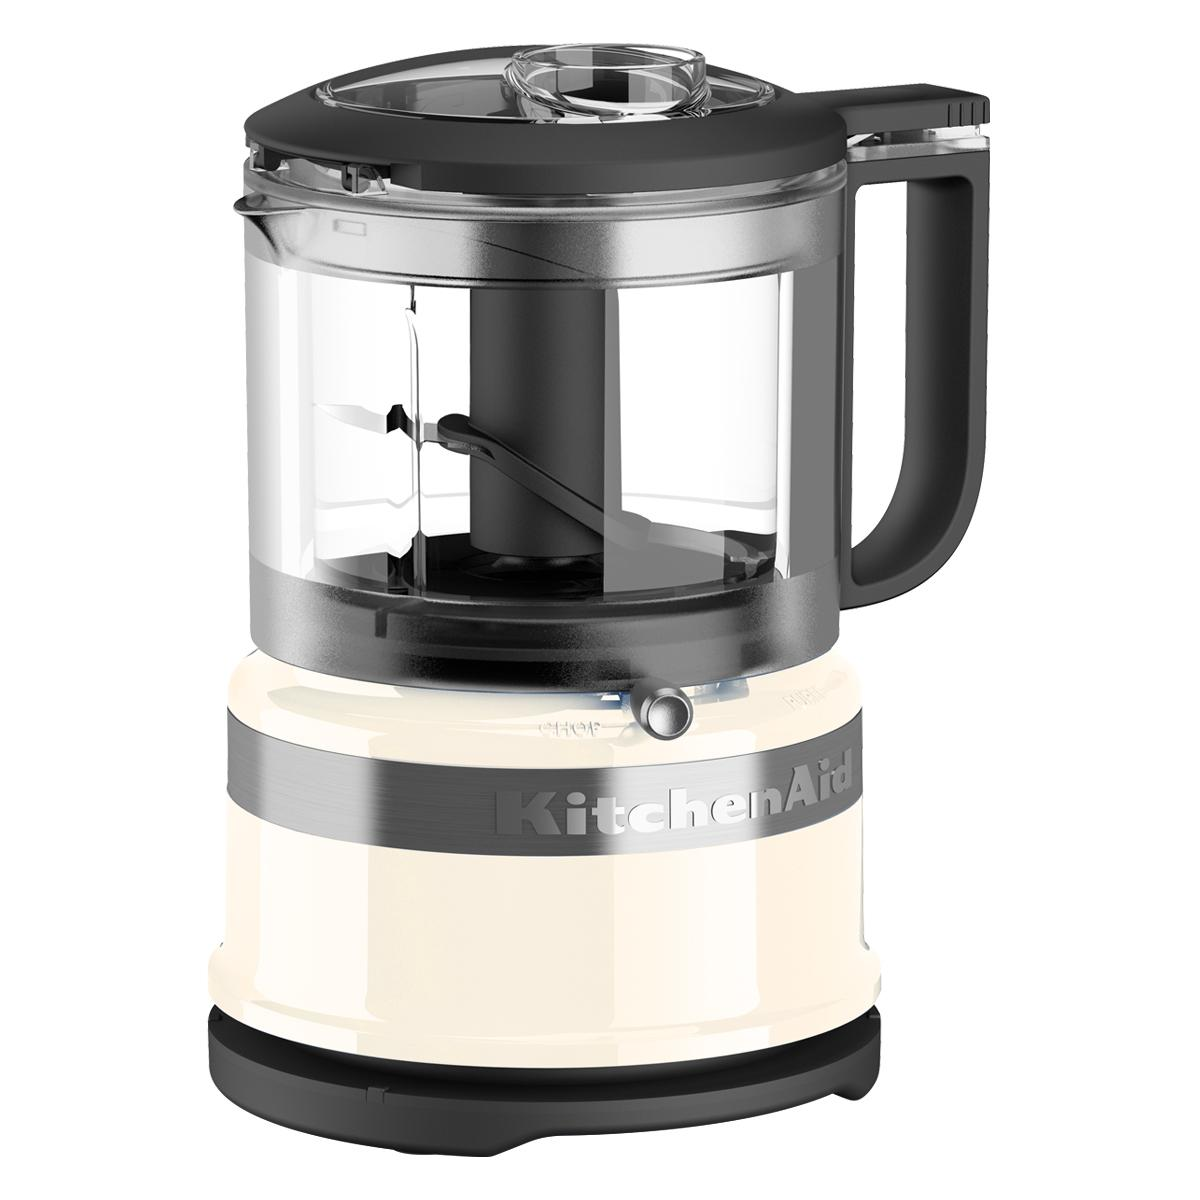 Top 5 Food Processor The Best  Selling